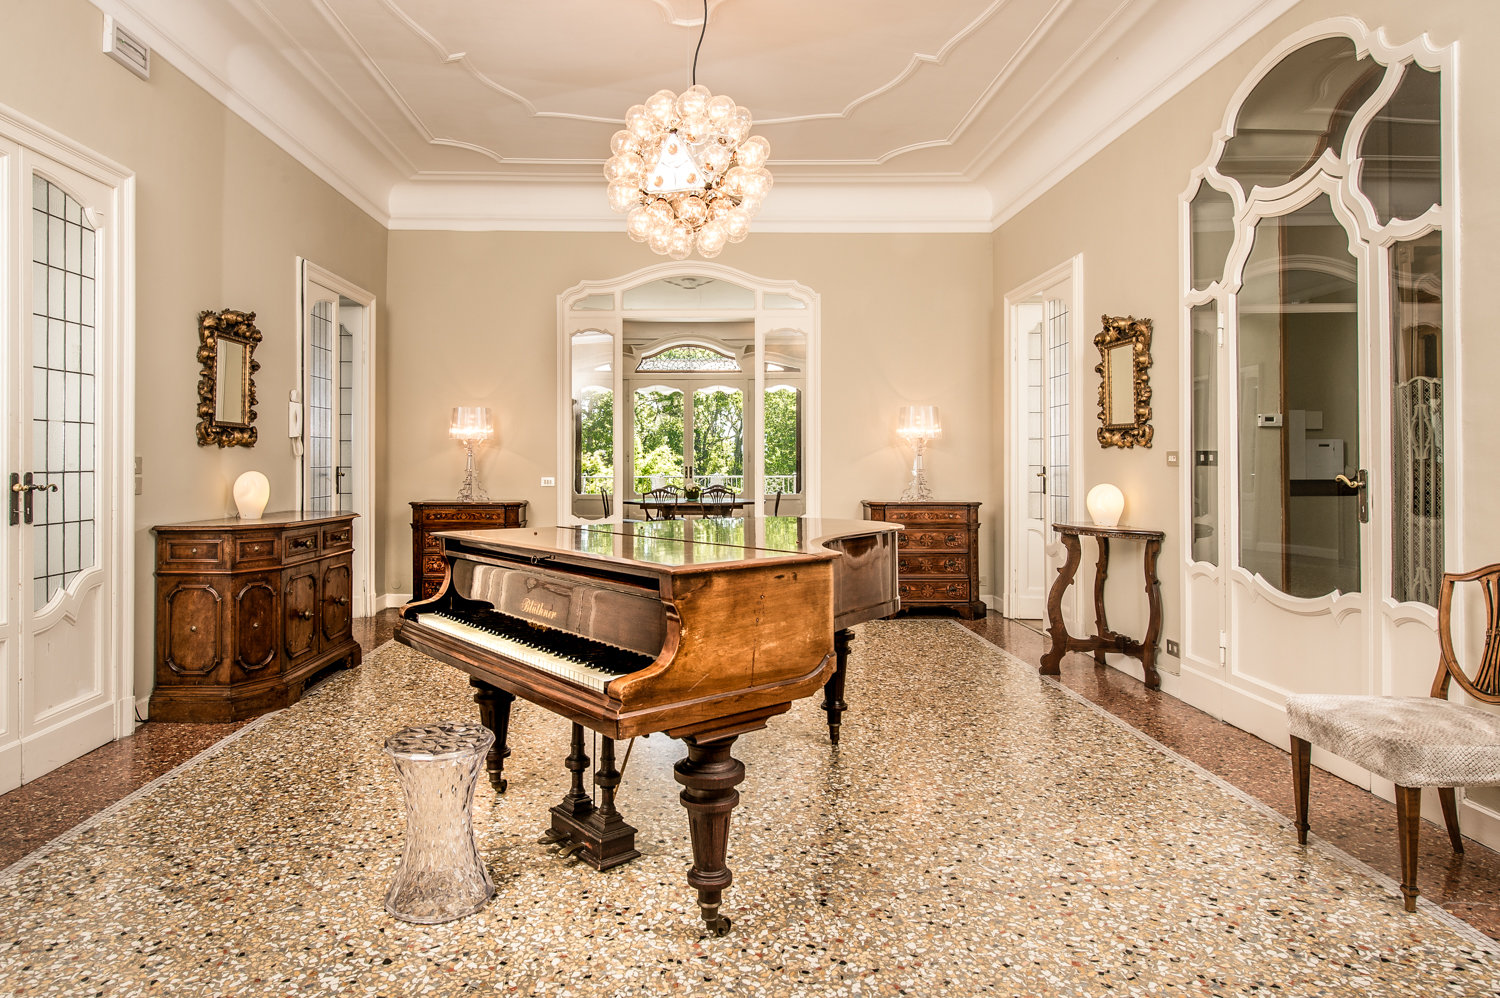 Stresa Prestigious historical villa for rent